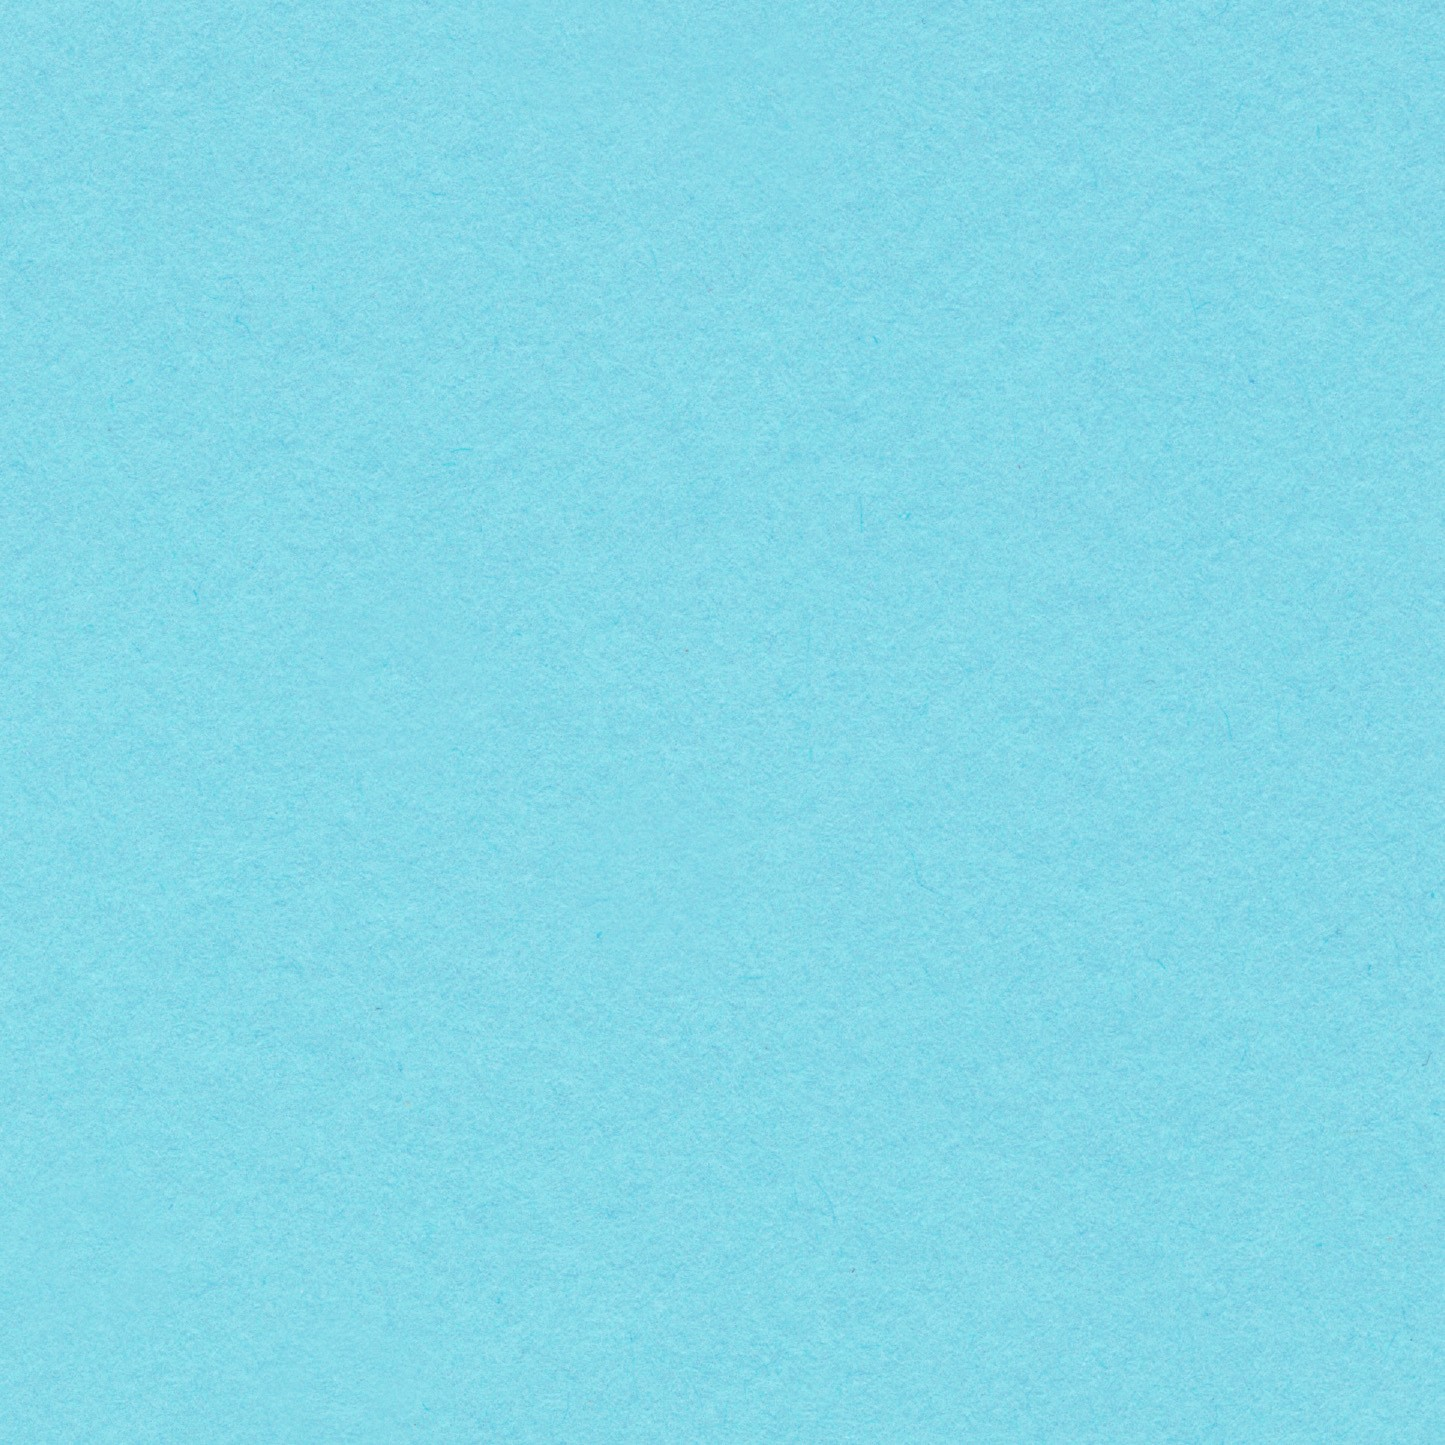 Blue - Turquoise 135gsm